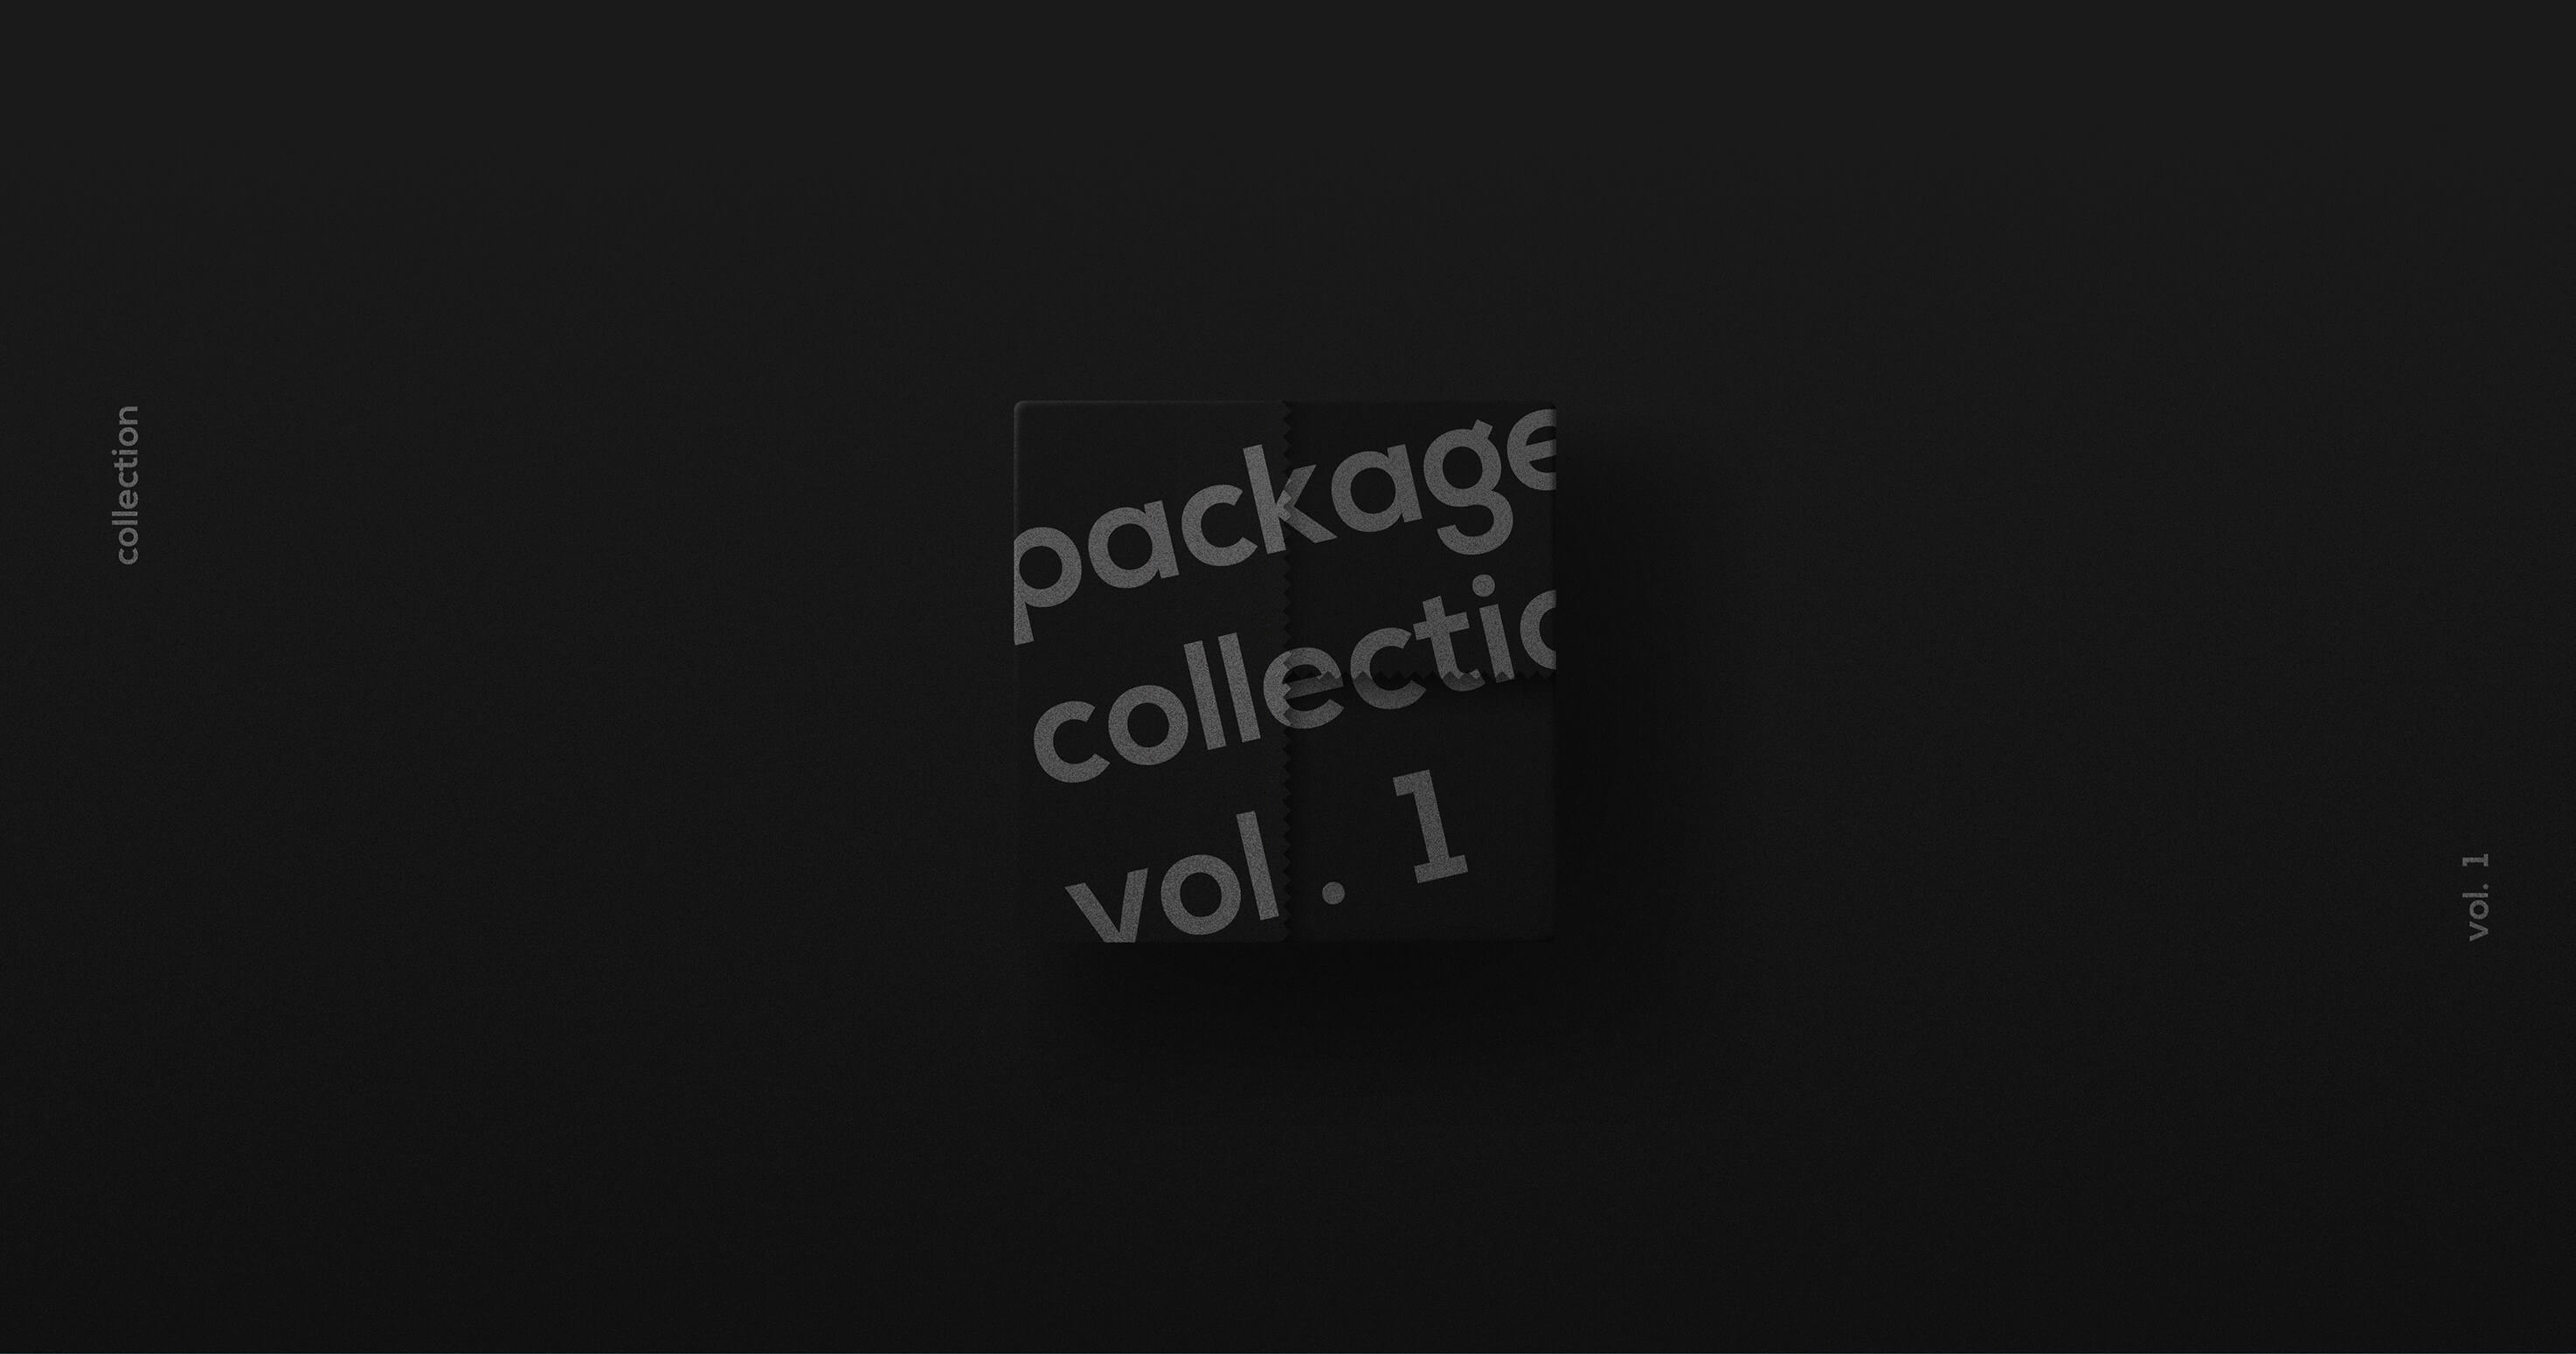 Packaging Collection-01